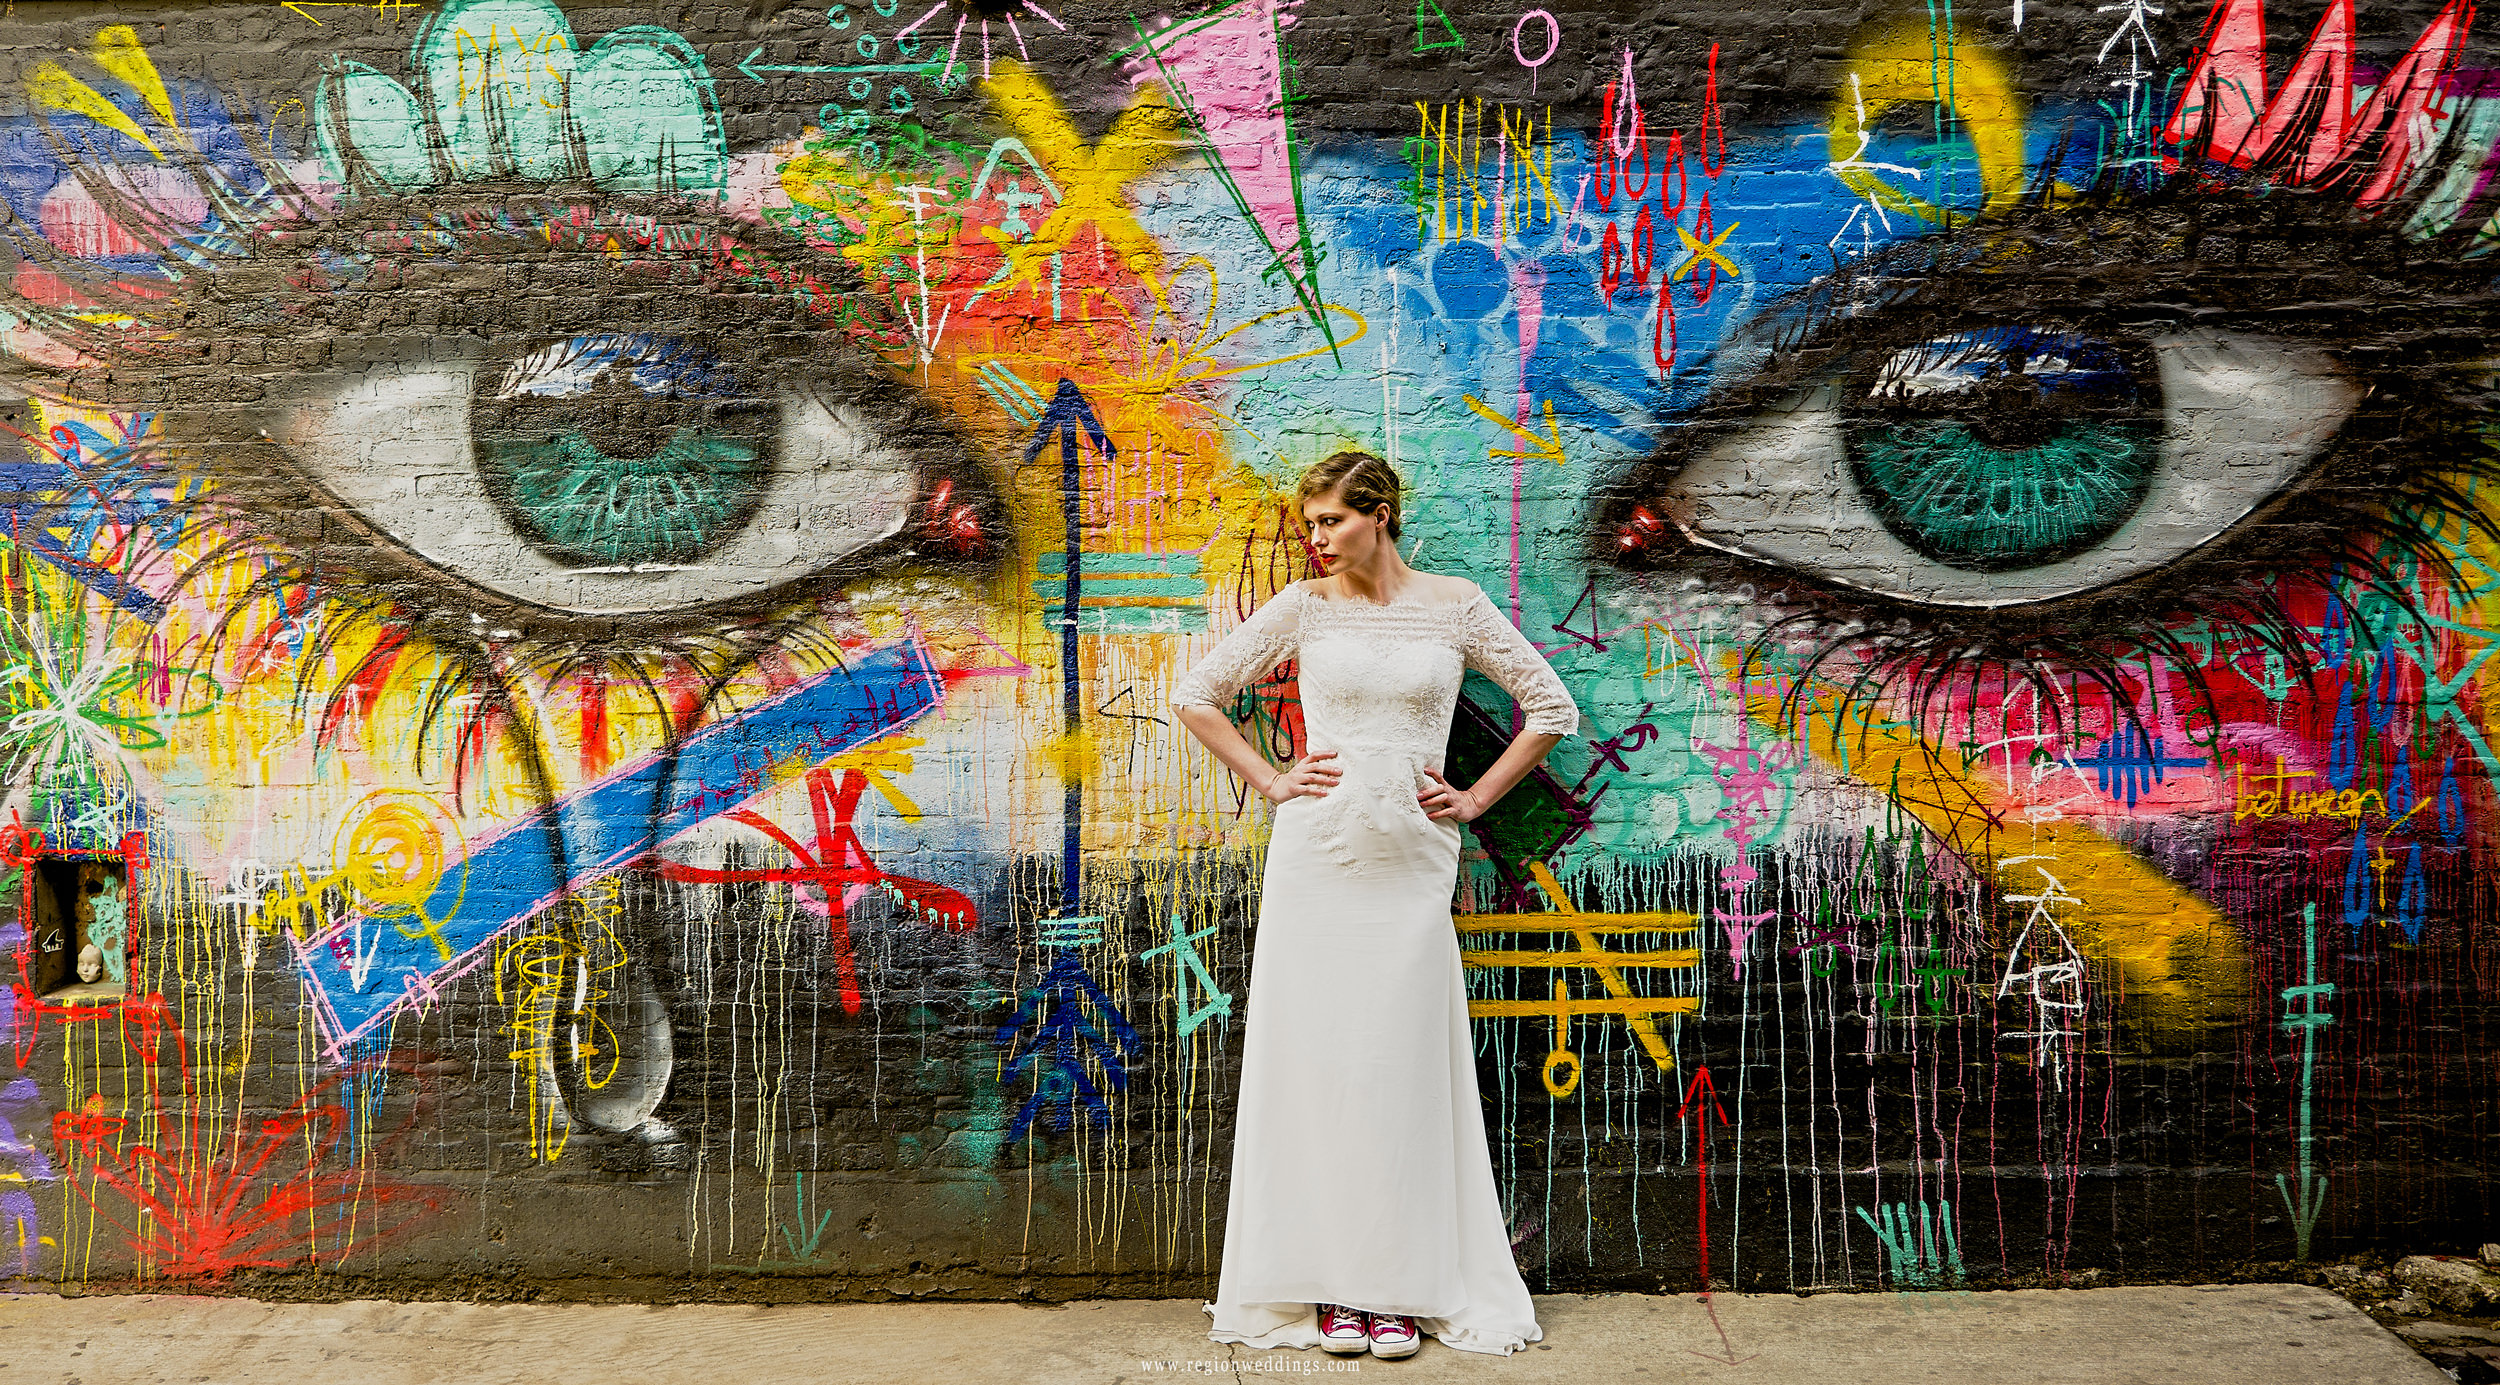 Colorful street art featuring two eyes in Bucktown, Chicago.